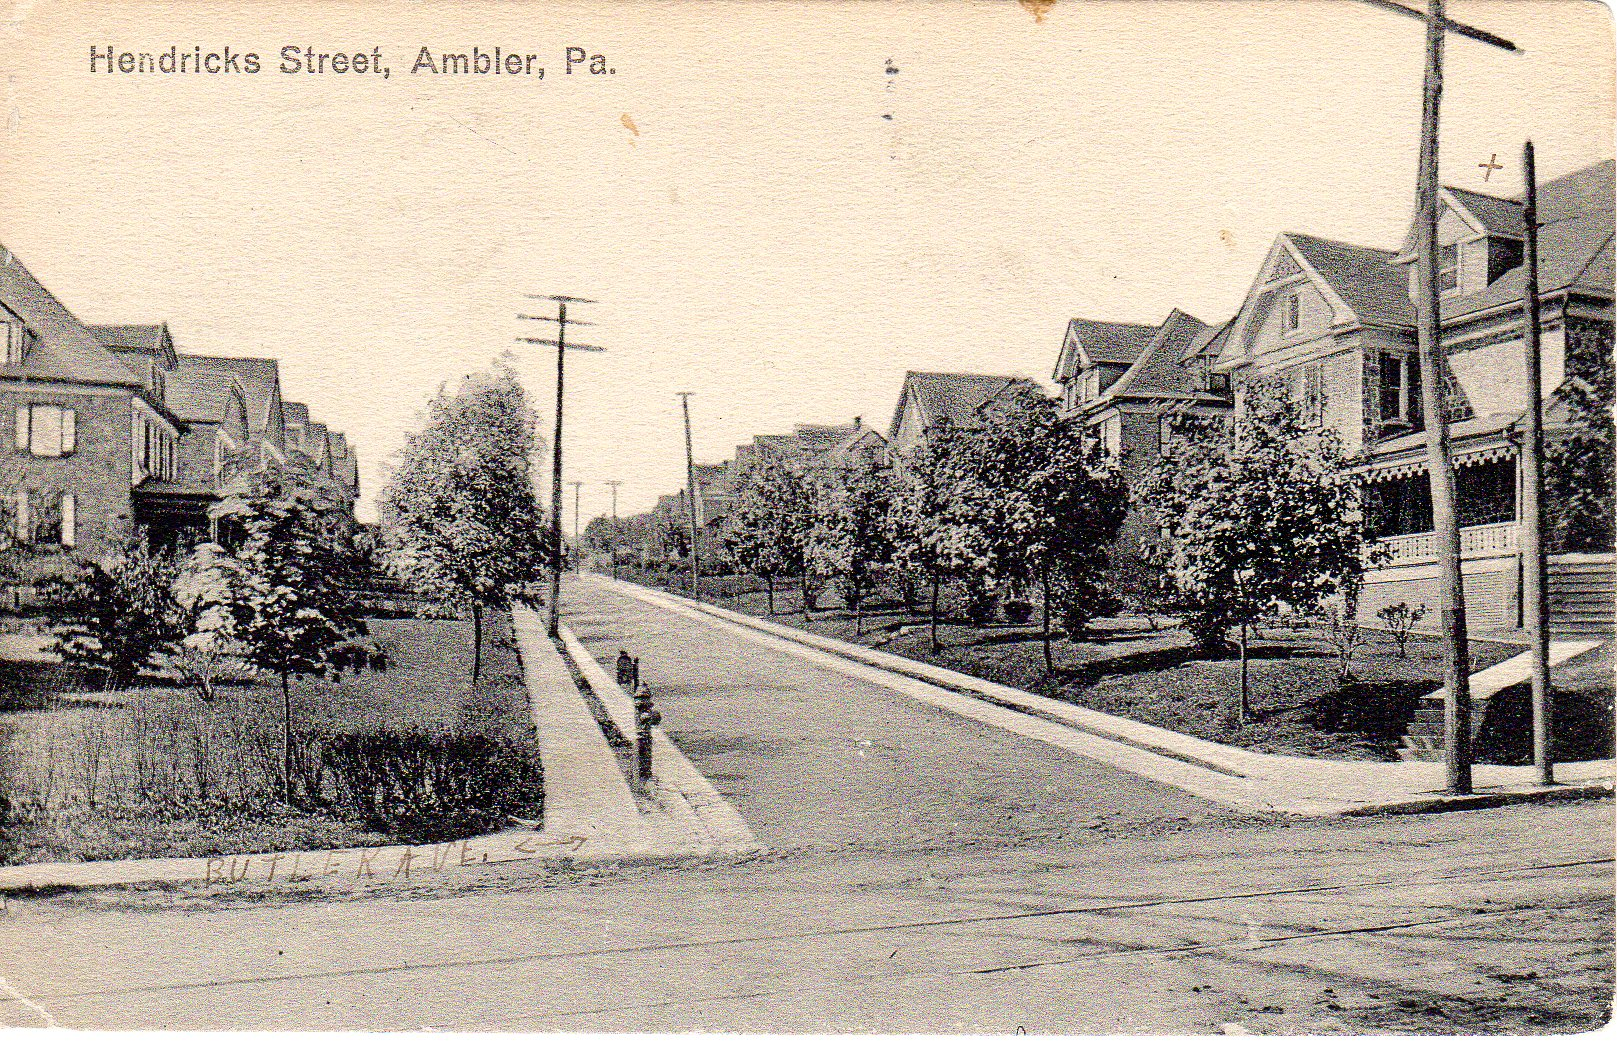 Post Card Collection (E Simon)_2682_60_Hendricks Street, Ambler, Pa_12 Feb 1919